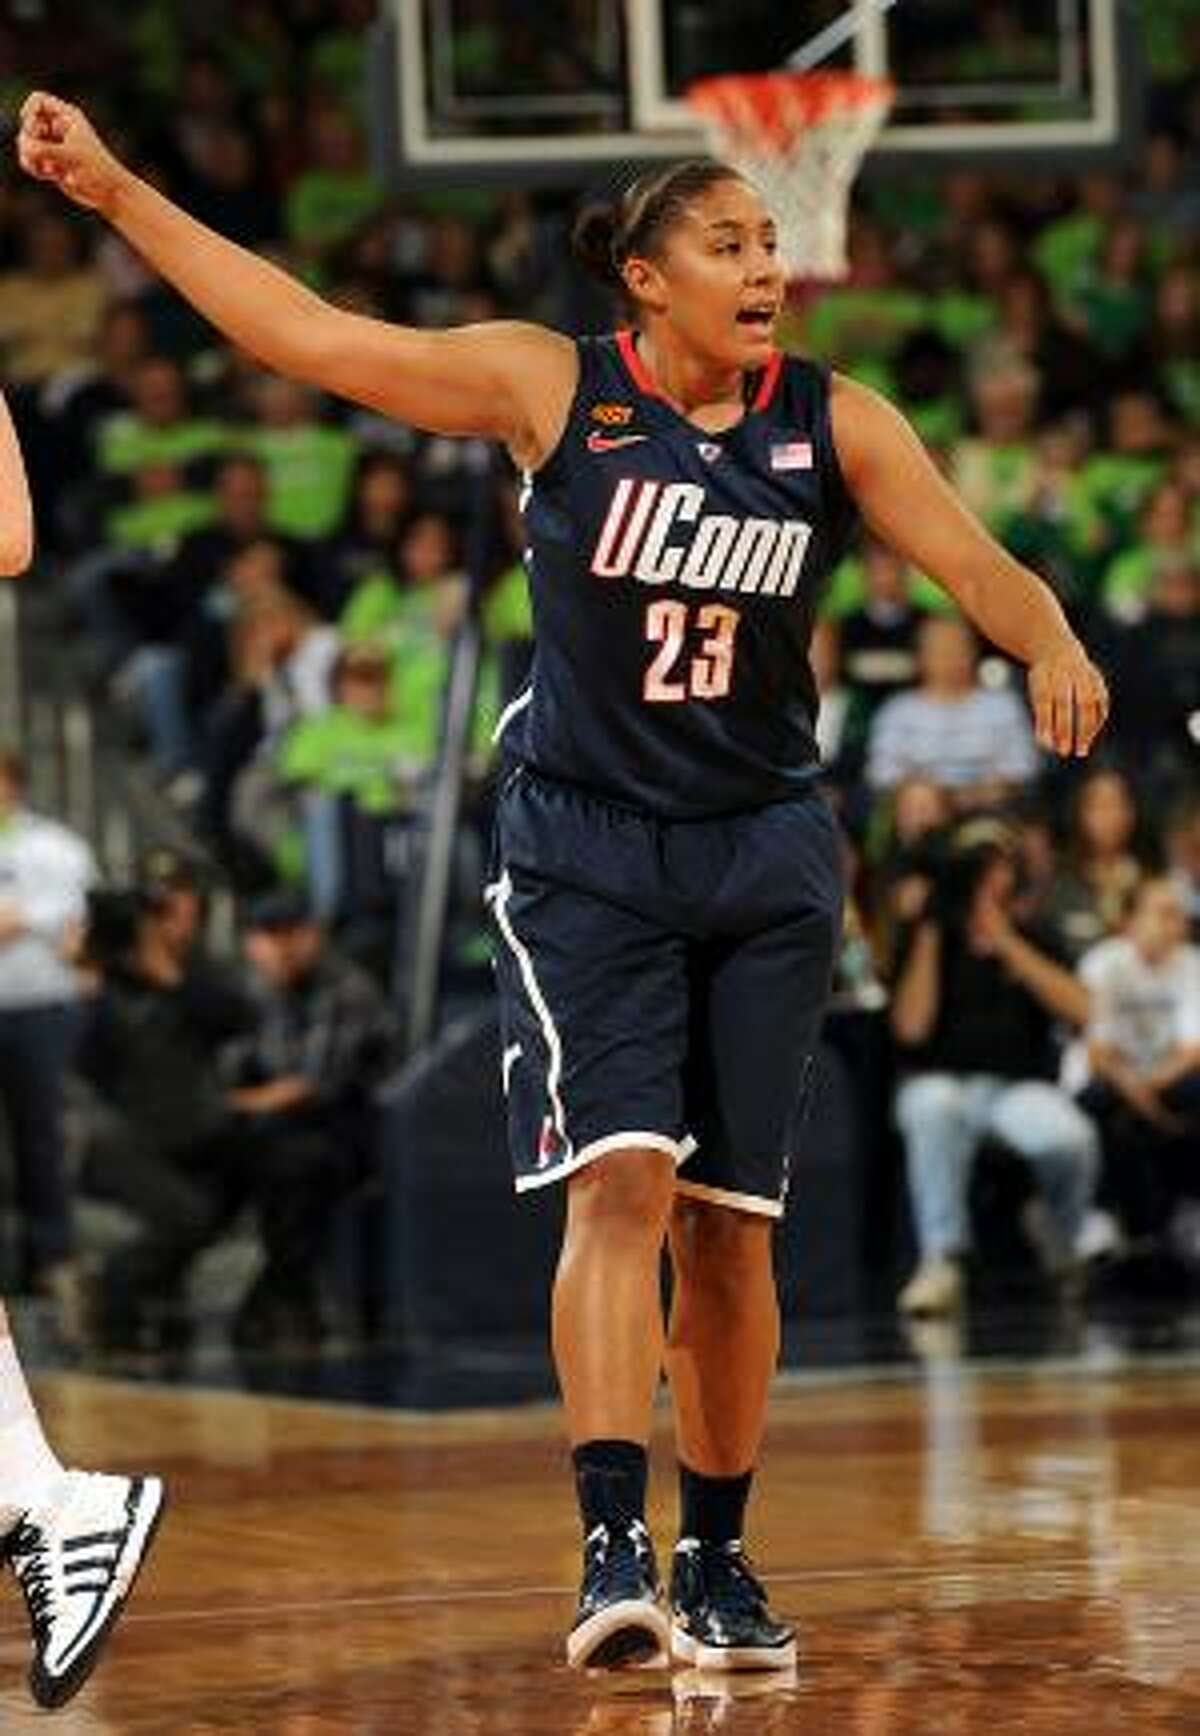 ASSOCIATED PRESS Connecticut forward Kaleena Mosqueda-Lewis gestures during the first half of Saturday's game against Notre Dame in South Bend, Ind. Connecticut lost to Notre Dame 74-67 in overtime.